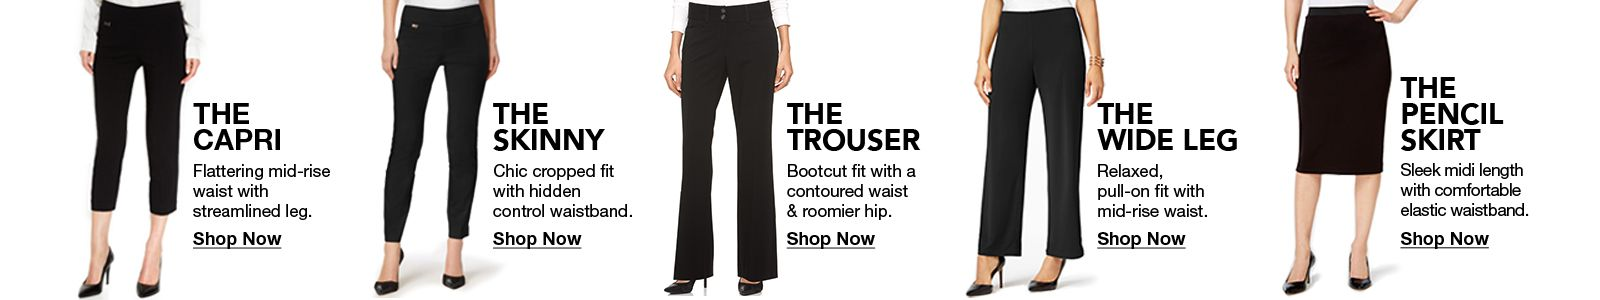 The Capri, Shop Now, The Skinny, Shop Now, The Trouser, Shop Now, The Wideleg, Shop Now